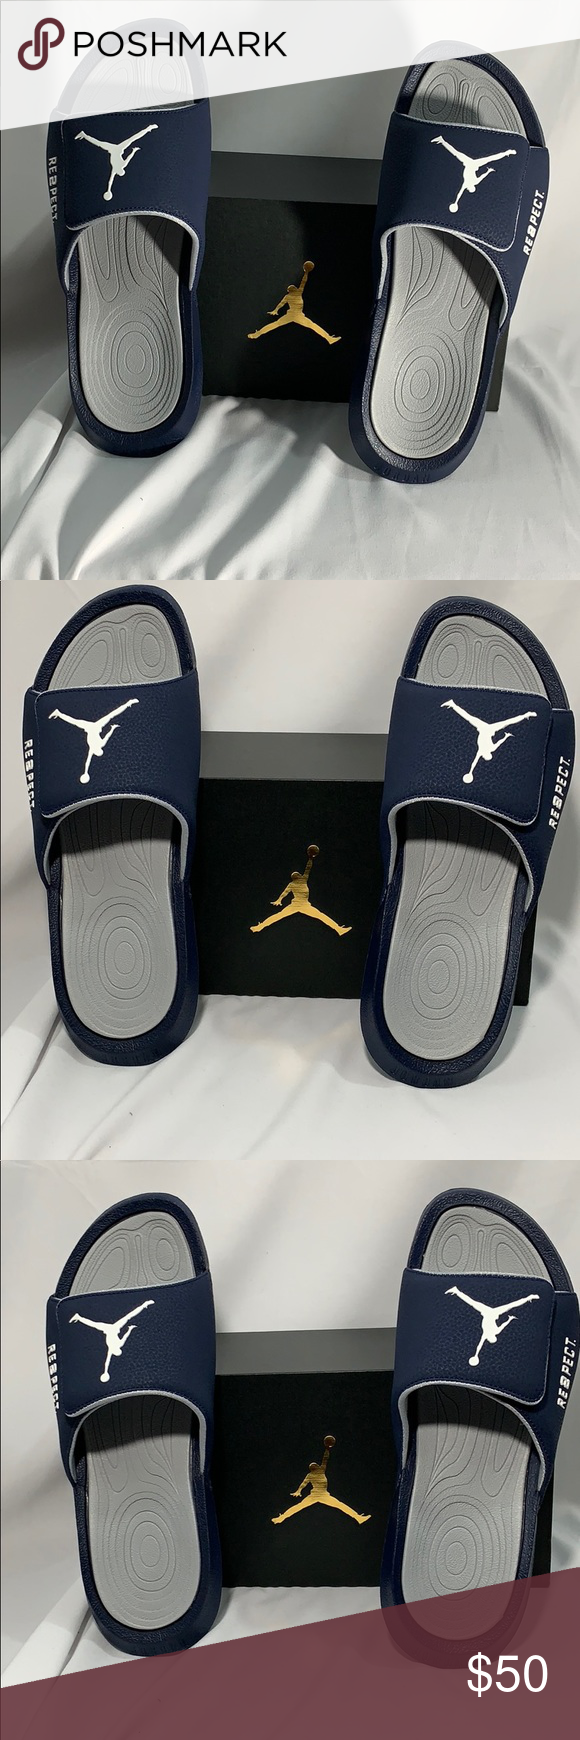 6ed39f42076 Jordan Hydro 6 RE2PECT SIZE 10 Blue / Gray Jordan Hydro 6 RE2PECT SIZE 10  NAVY/WHITE- WOLF GREY, AH6733 402 NWT Nike Shoes Loafers & Slip-Ons